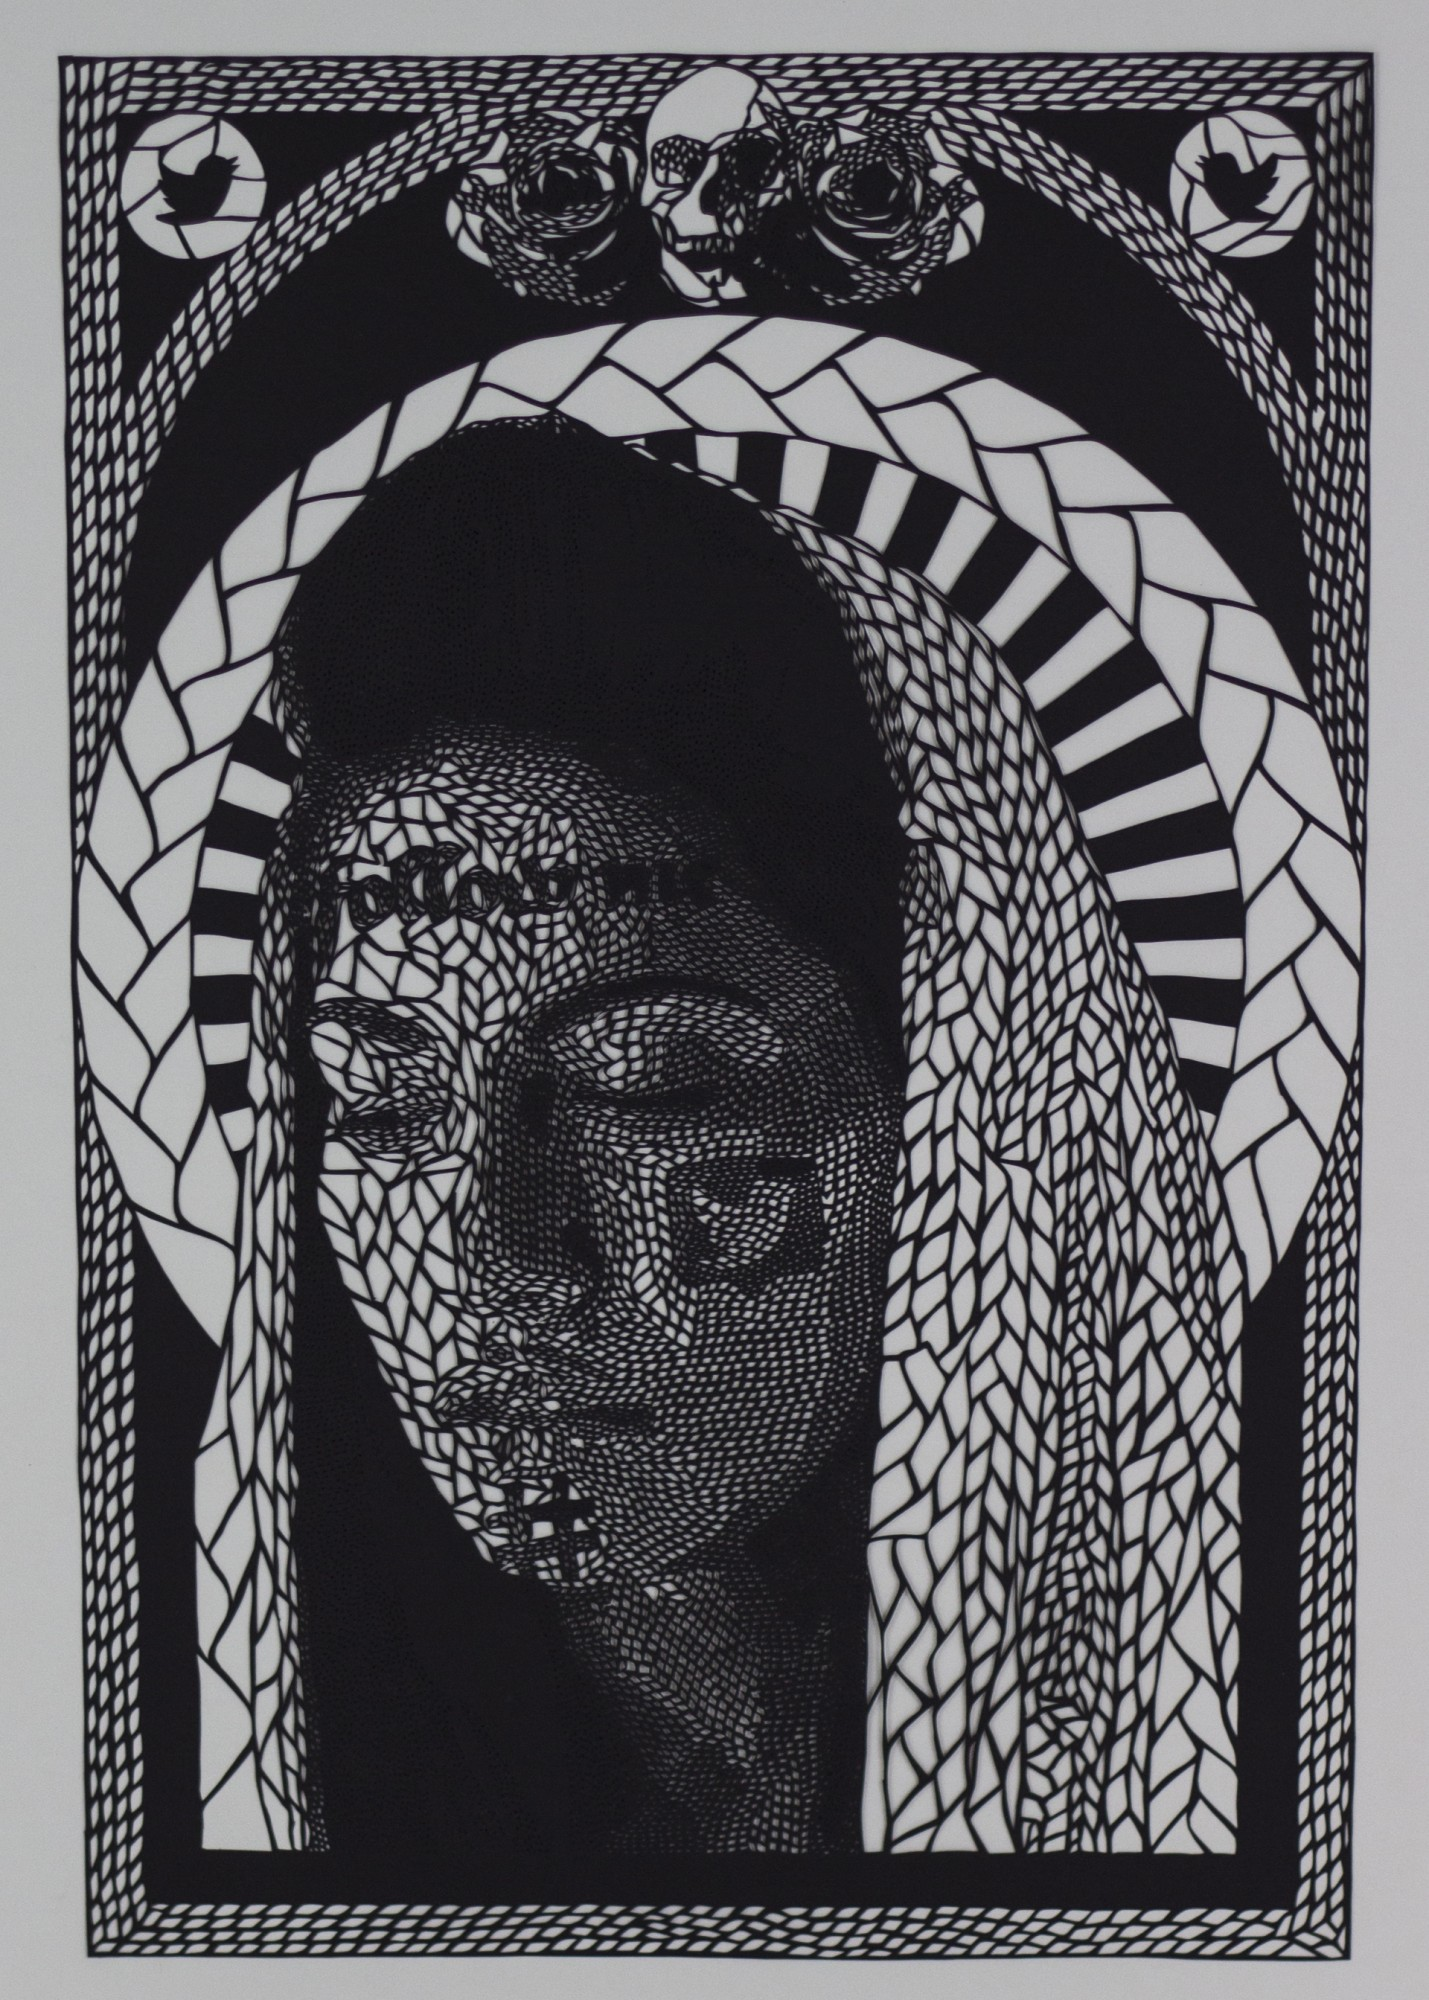 Intricate Paper Cut Social Media Iconography Meshed With Religious Art by Carlo Fantin - Virgin 2